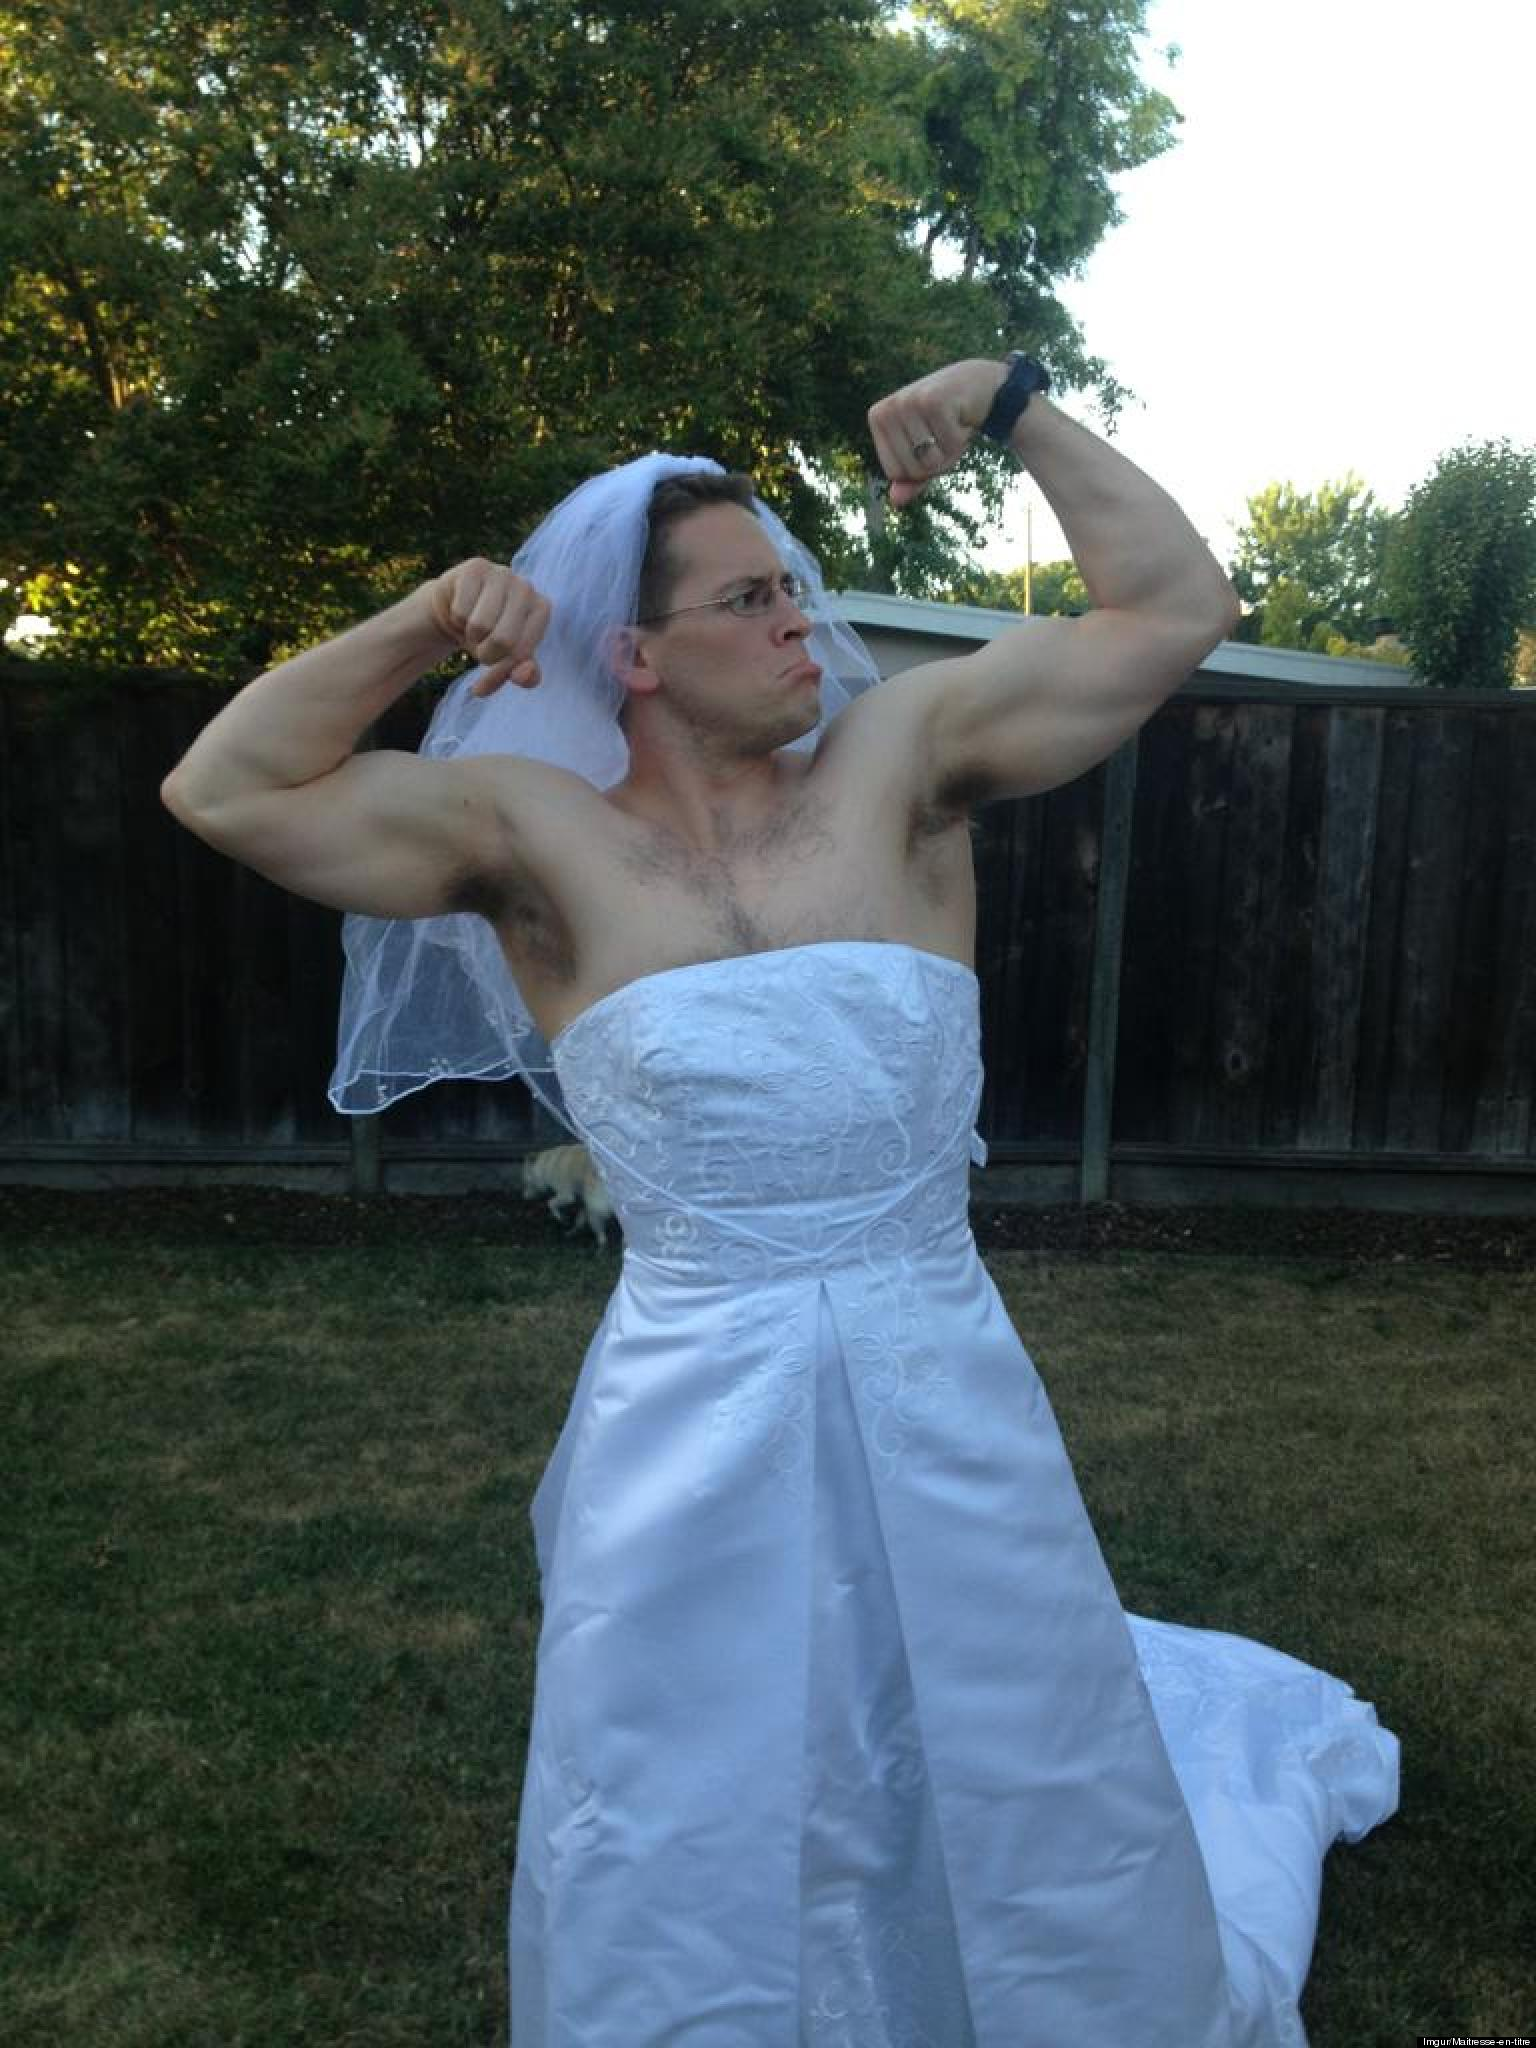 Funny Divorce: Why This Man Is Wearing A Wedding Dress ...